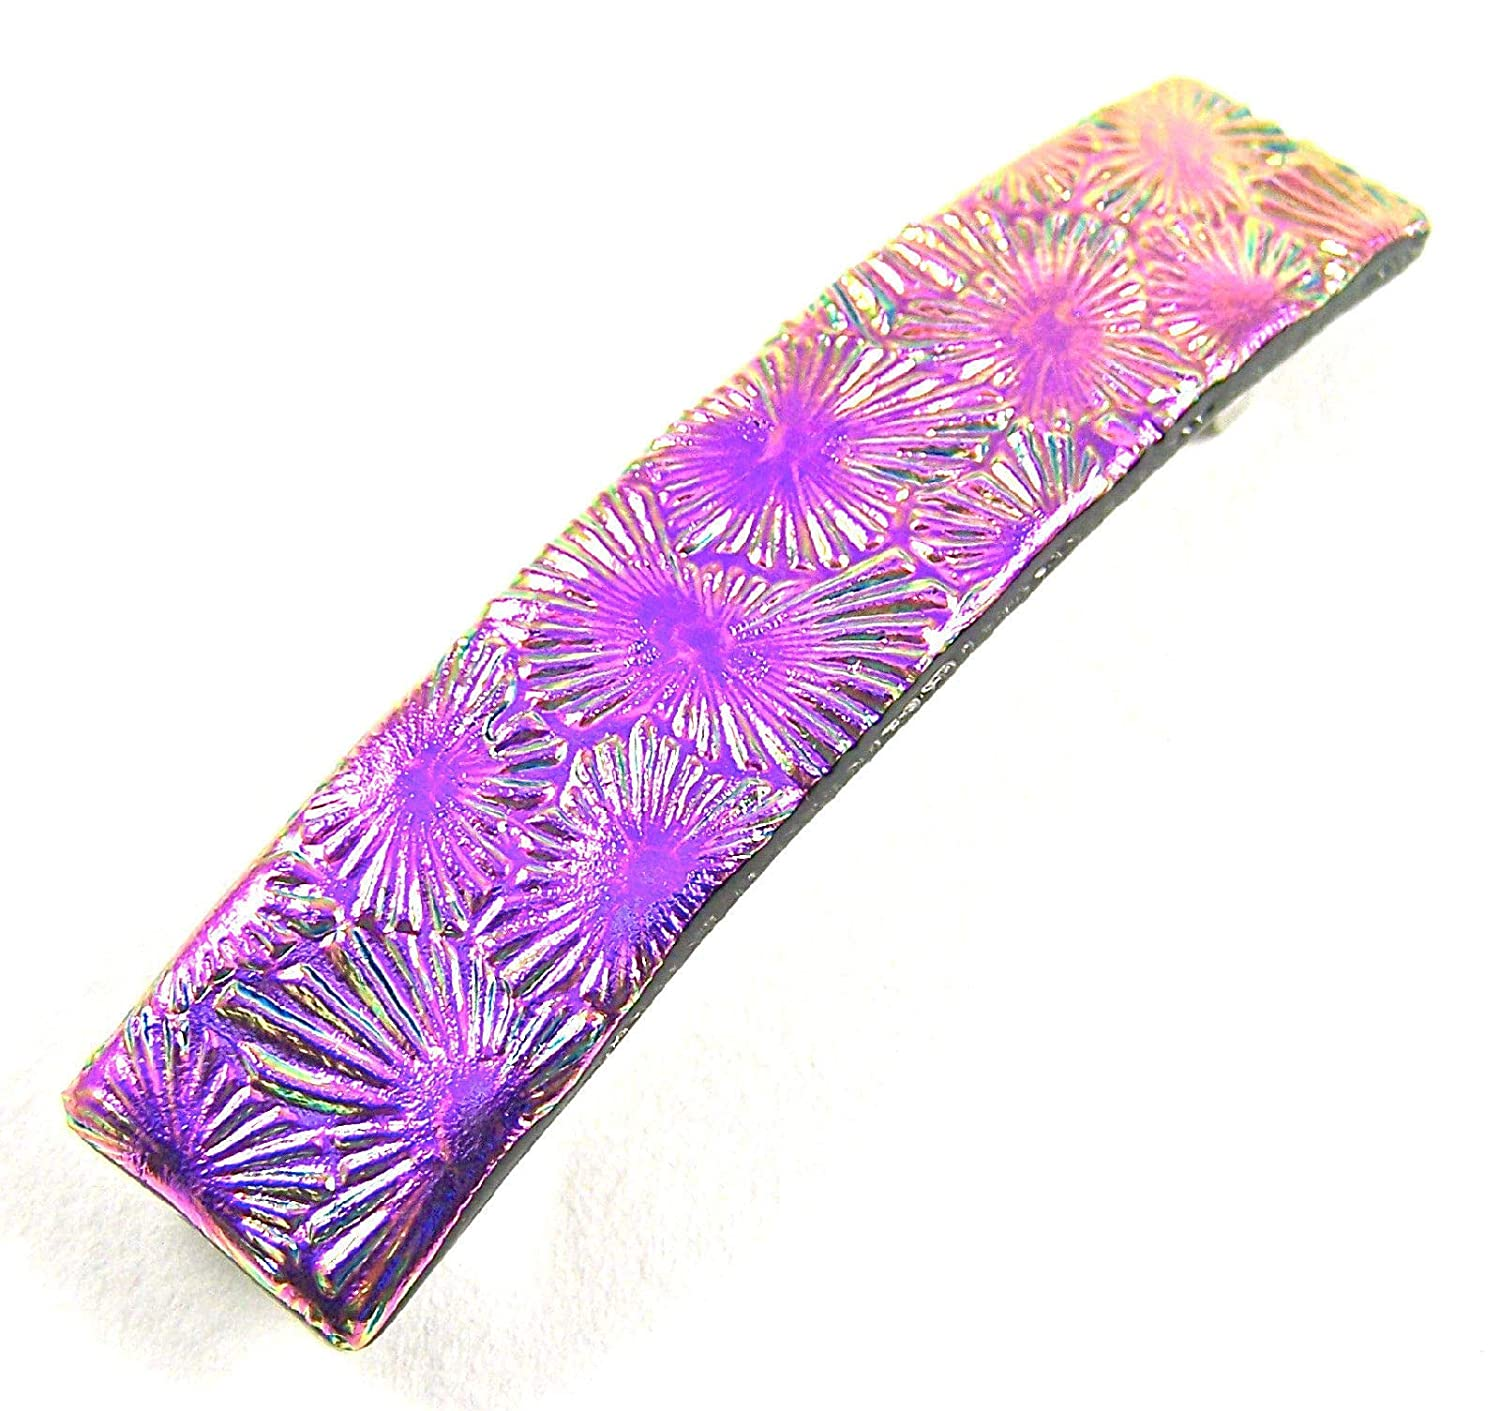 Dichroic Glass Hair Barrette - Fixed price for sale Magenta Inexpensive 3.5